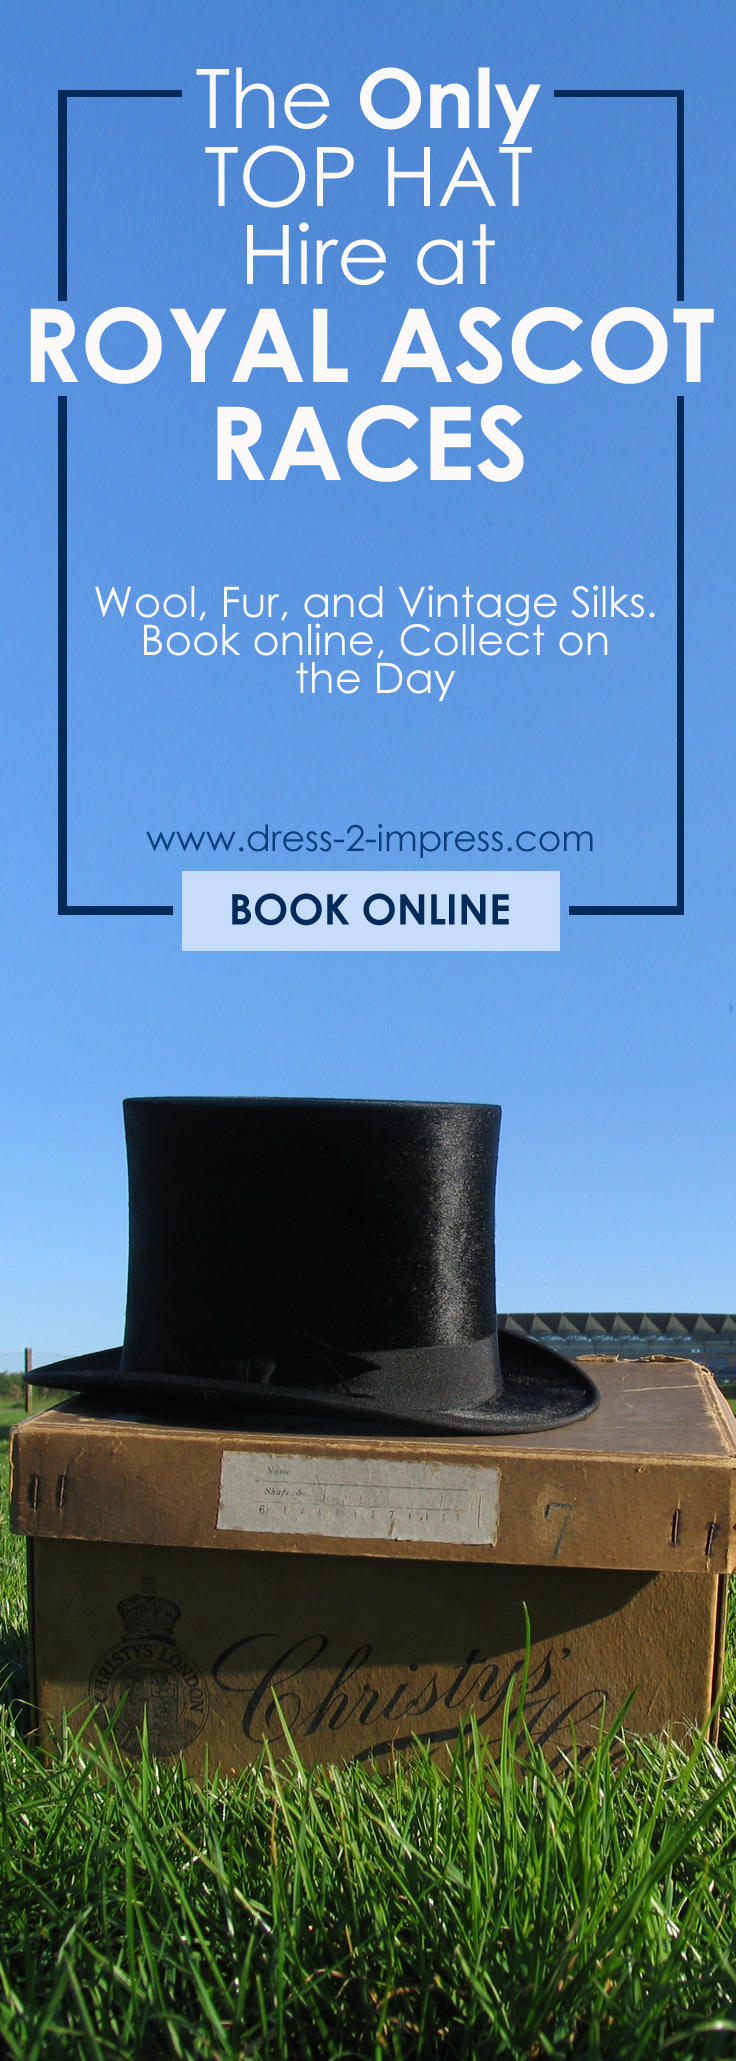 Mens Top Hat Hire. Top Hats for Ascot. Top Hats for Royal Ascot. The only Top Hat Hire at Royal Ascot Races. Wool, Fur Melusine and Vintage Silk available. Top Hat Hire for Ascot. Hats for other events, weddings, available on Mail Order. Top Hats for Royal Ascot. #tophats #hathire #formalwear #menswear